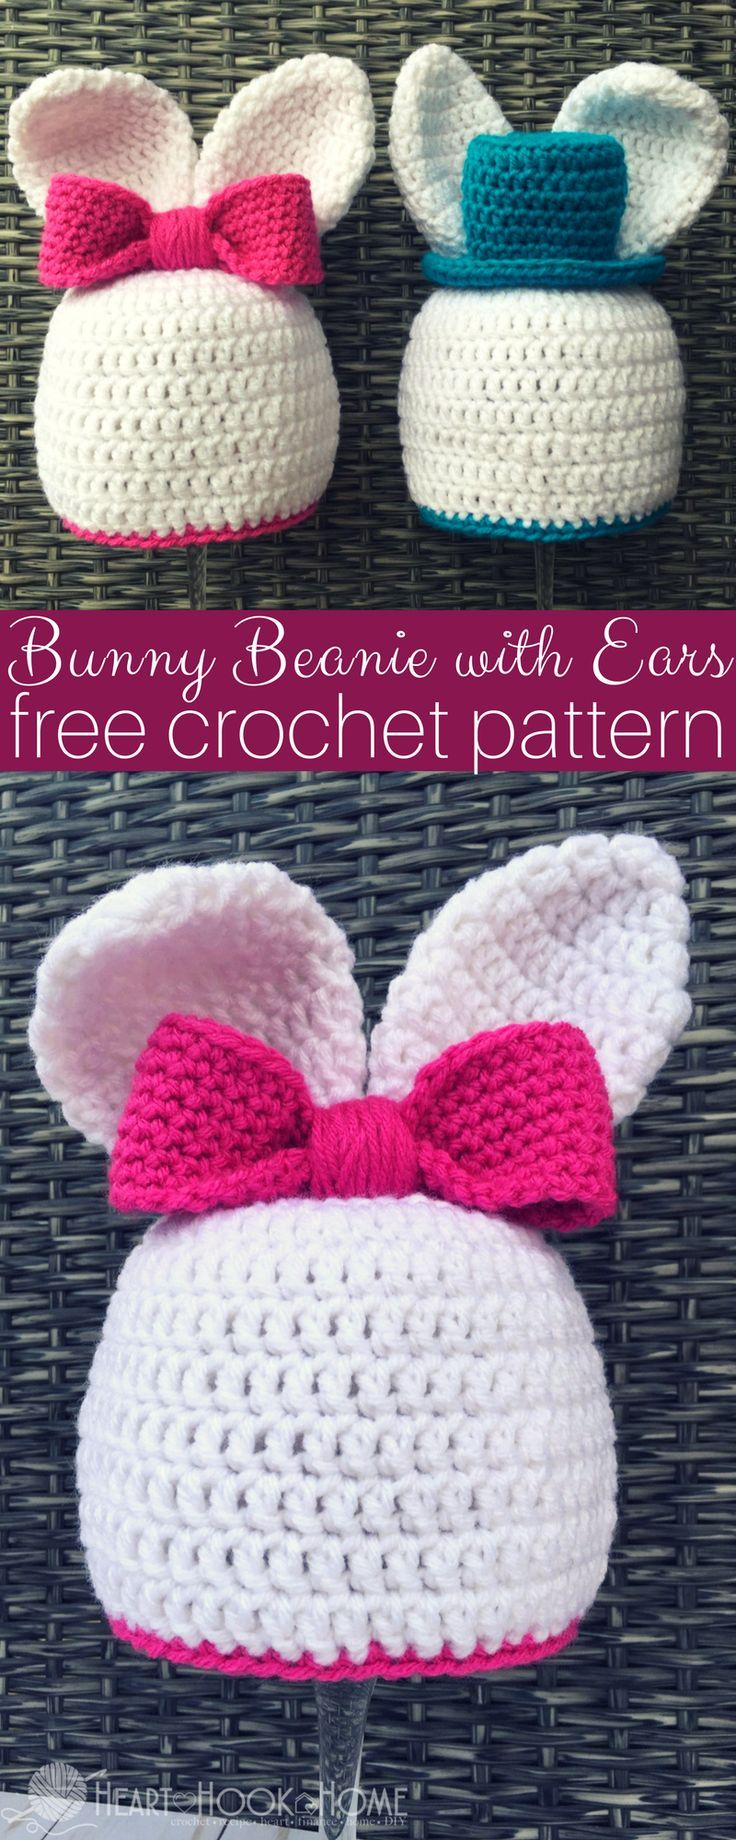 This free crochet pattern for a Bunny Beanie with ears is perfect for Easter. How adorable!